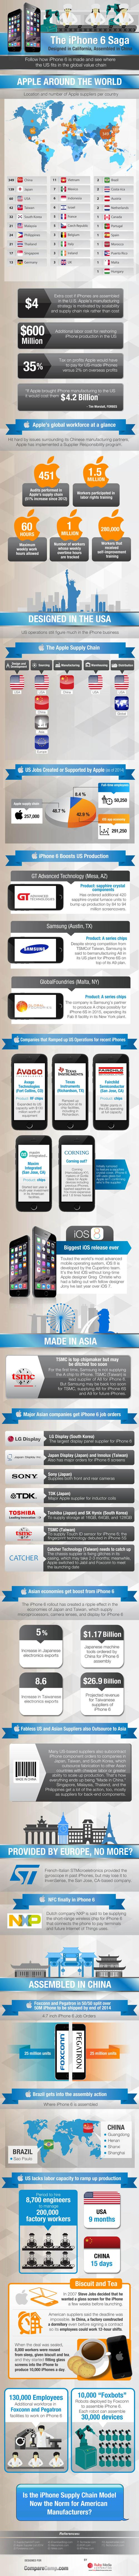 EBN - Hailey Lynne McKeefry - Infographic: Apple Perfects Global Supply Chain